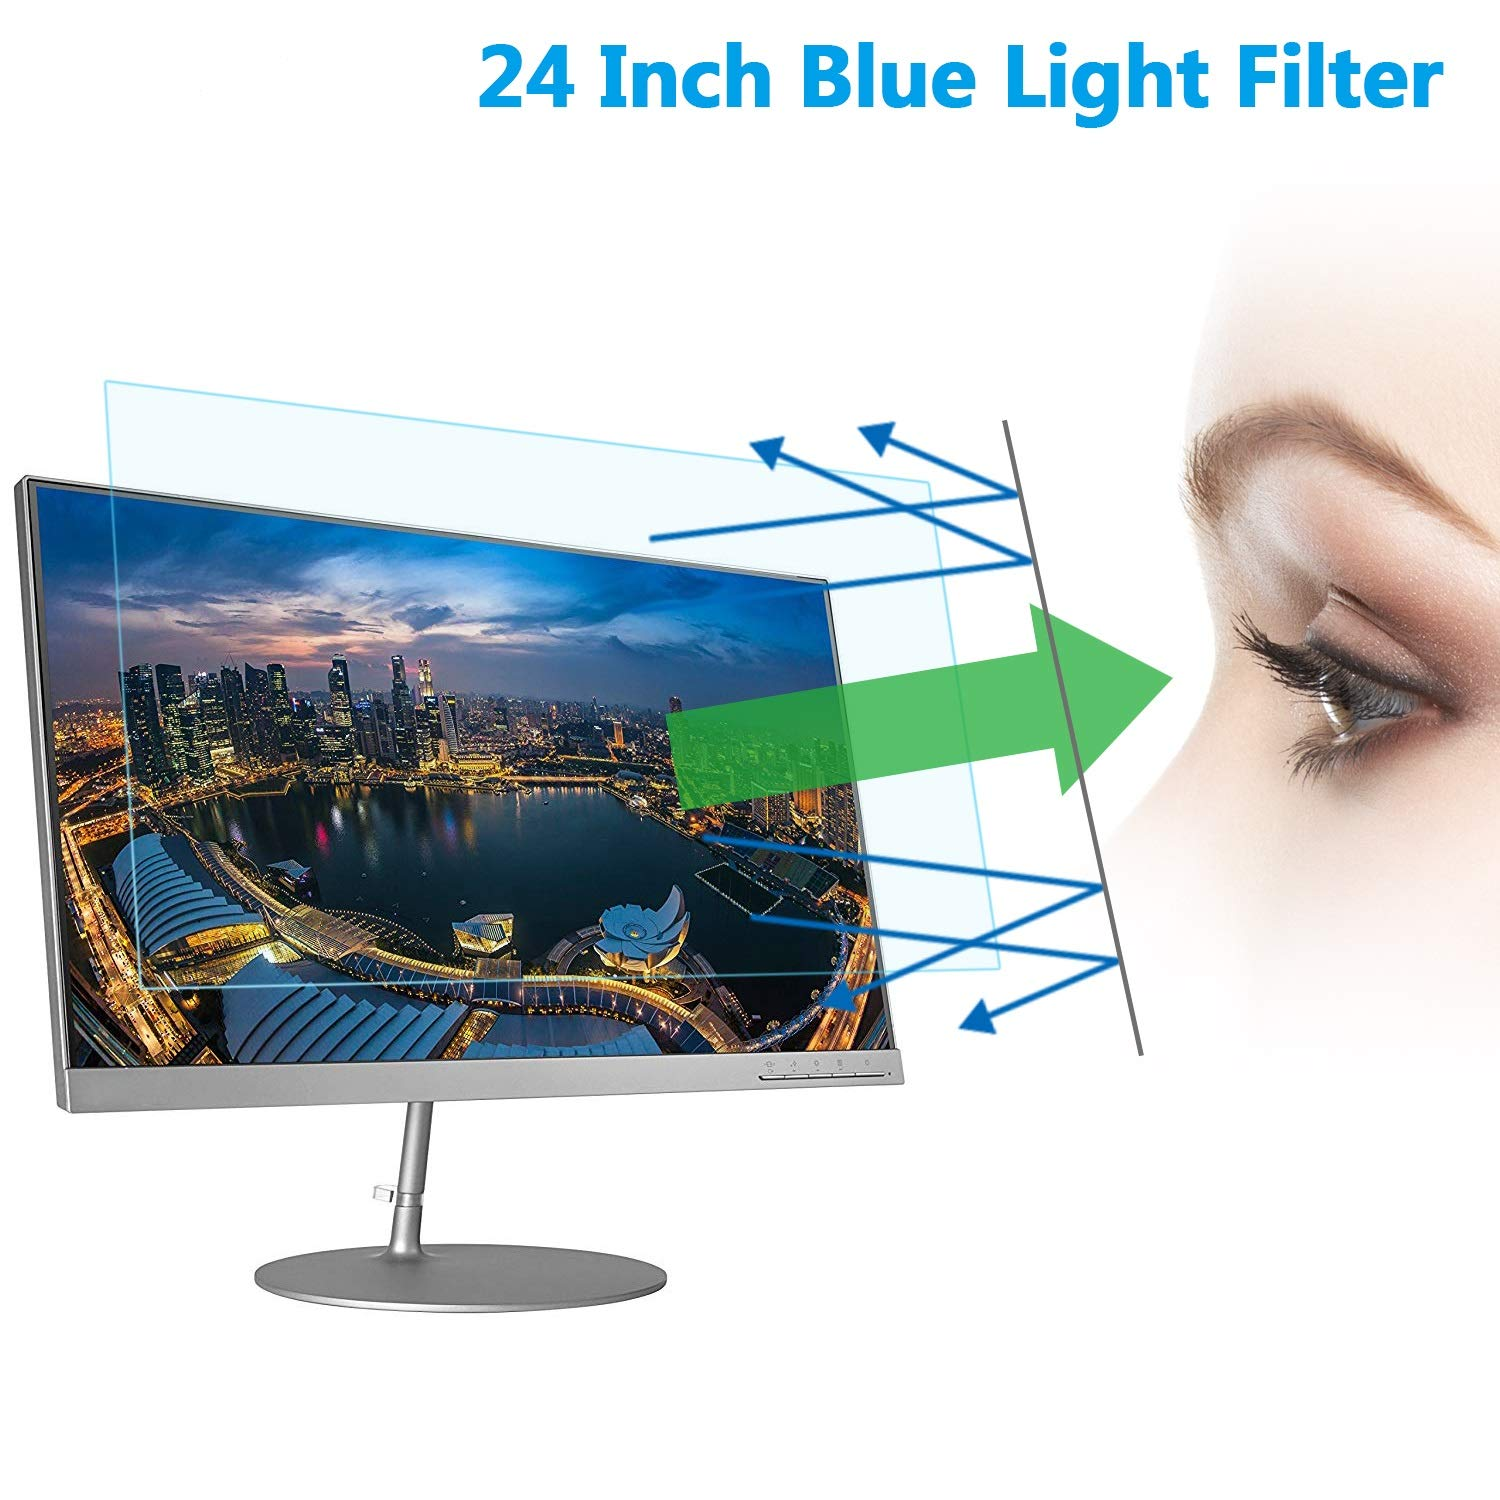 24'' Computer Anti Blue Light Screen Protector, Eye Protection Reduce Eye Fatigue and Eye Strain for 24 inches Widescreen Desktop Monitor by LILIONGTH